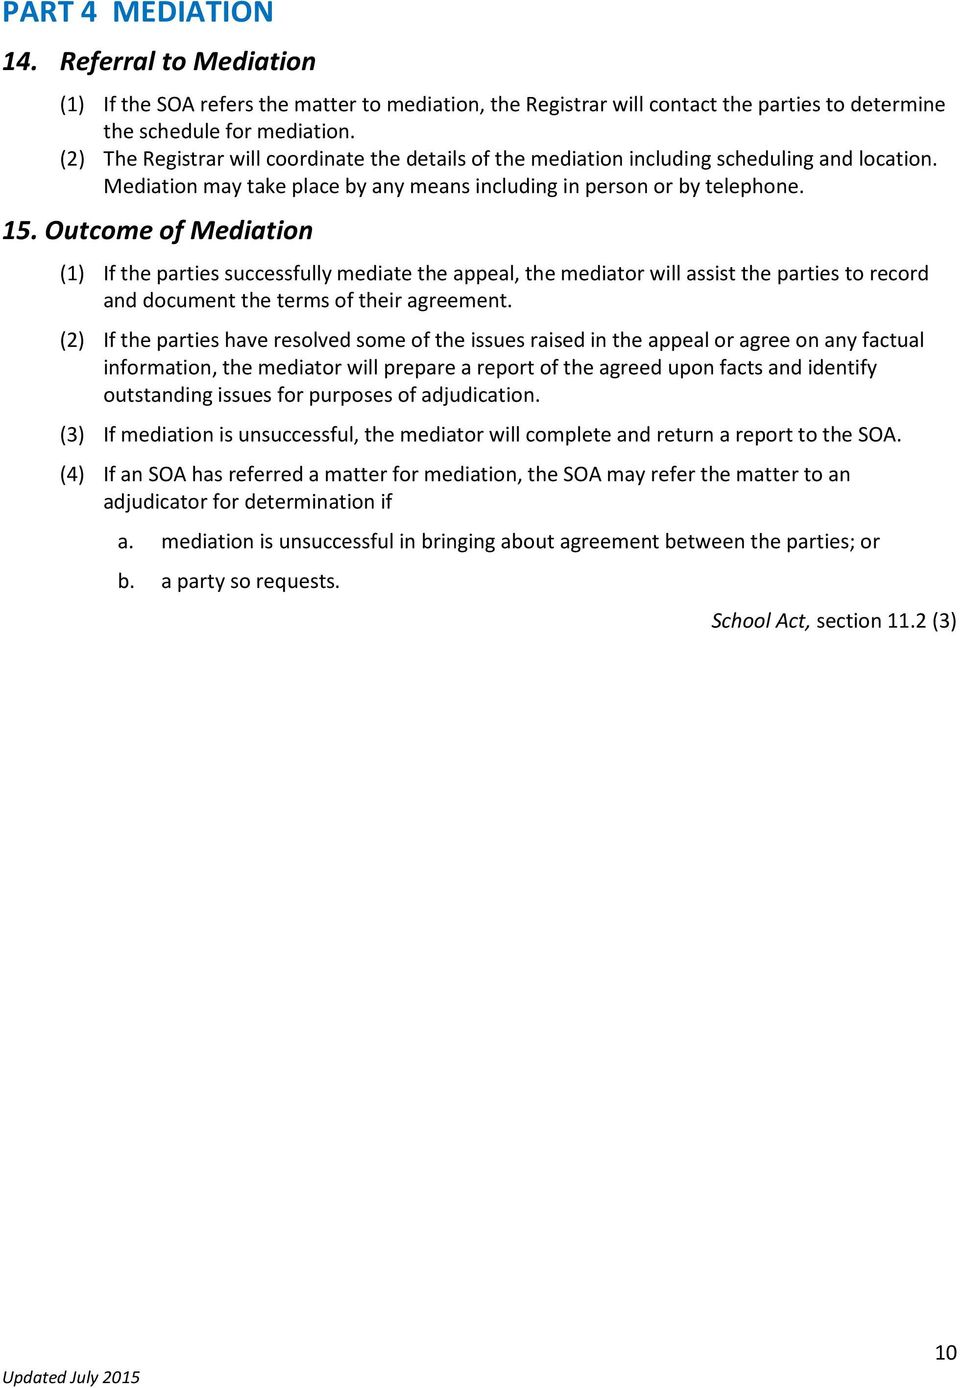 Outcome of Mediation (1) If the parties successfully mediate the appeal, the mediator will assist the parties to record and document the terms of their agreement.